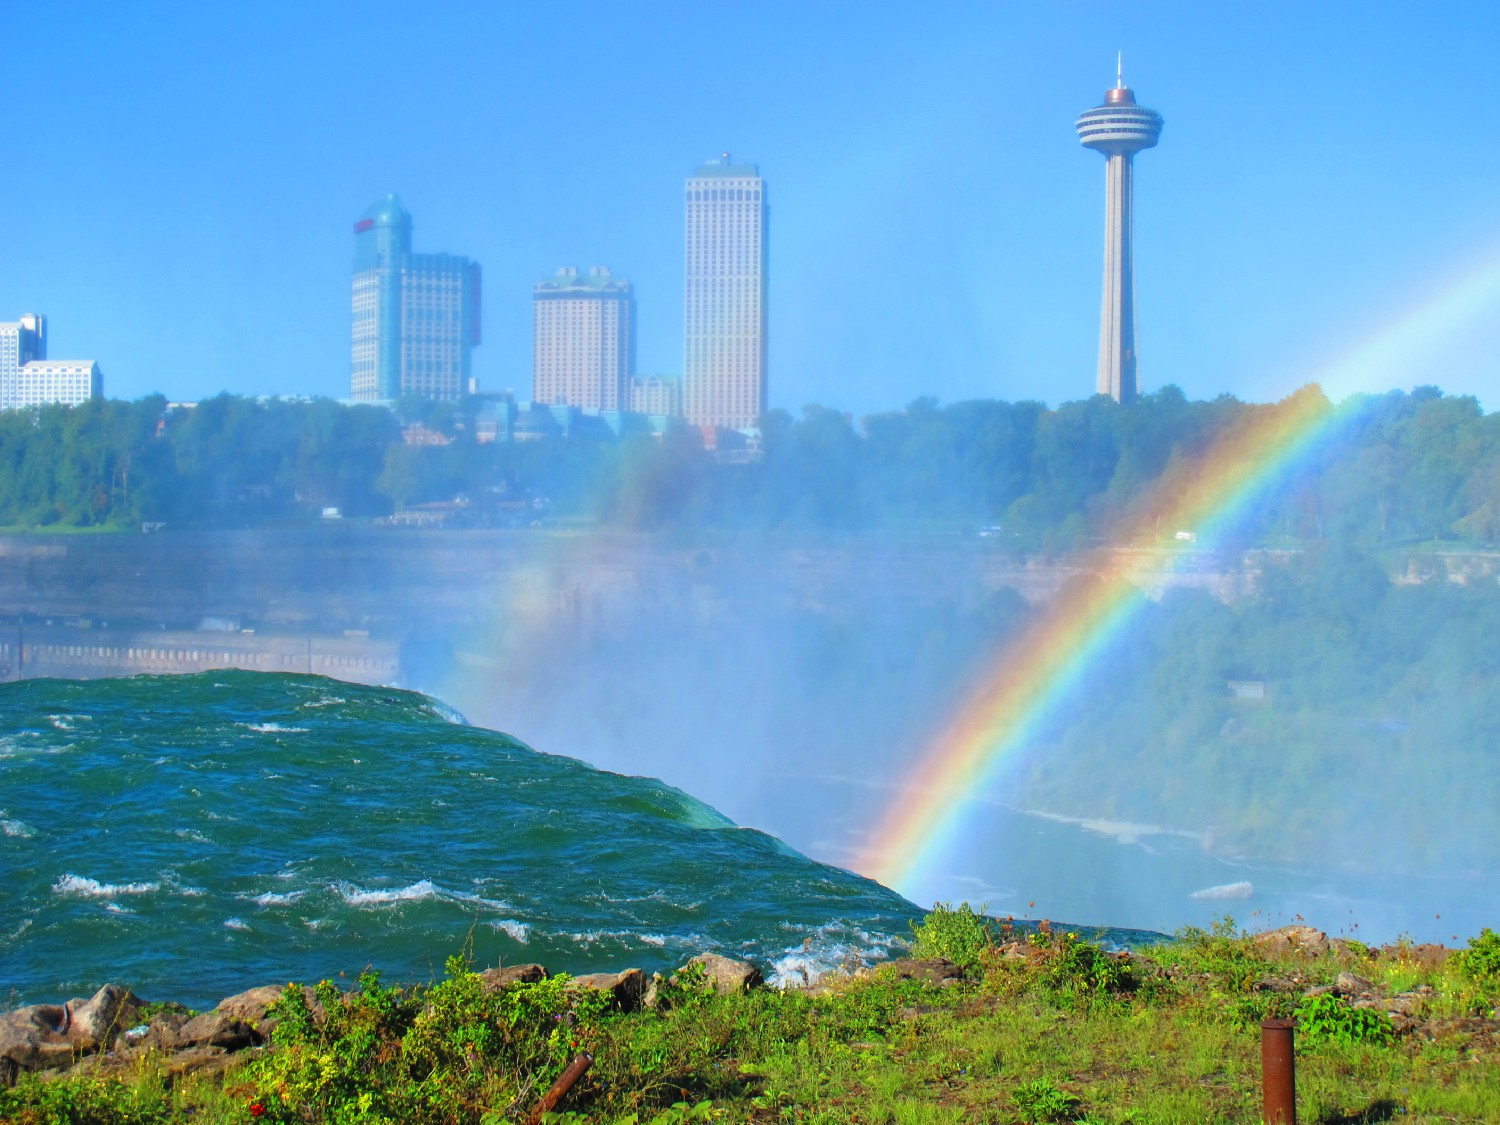 niagra rainbows with tower img author dreizler b bob